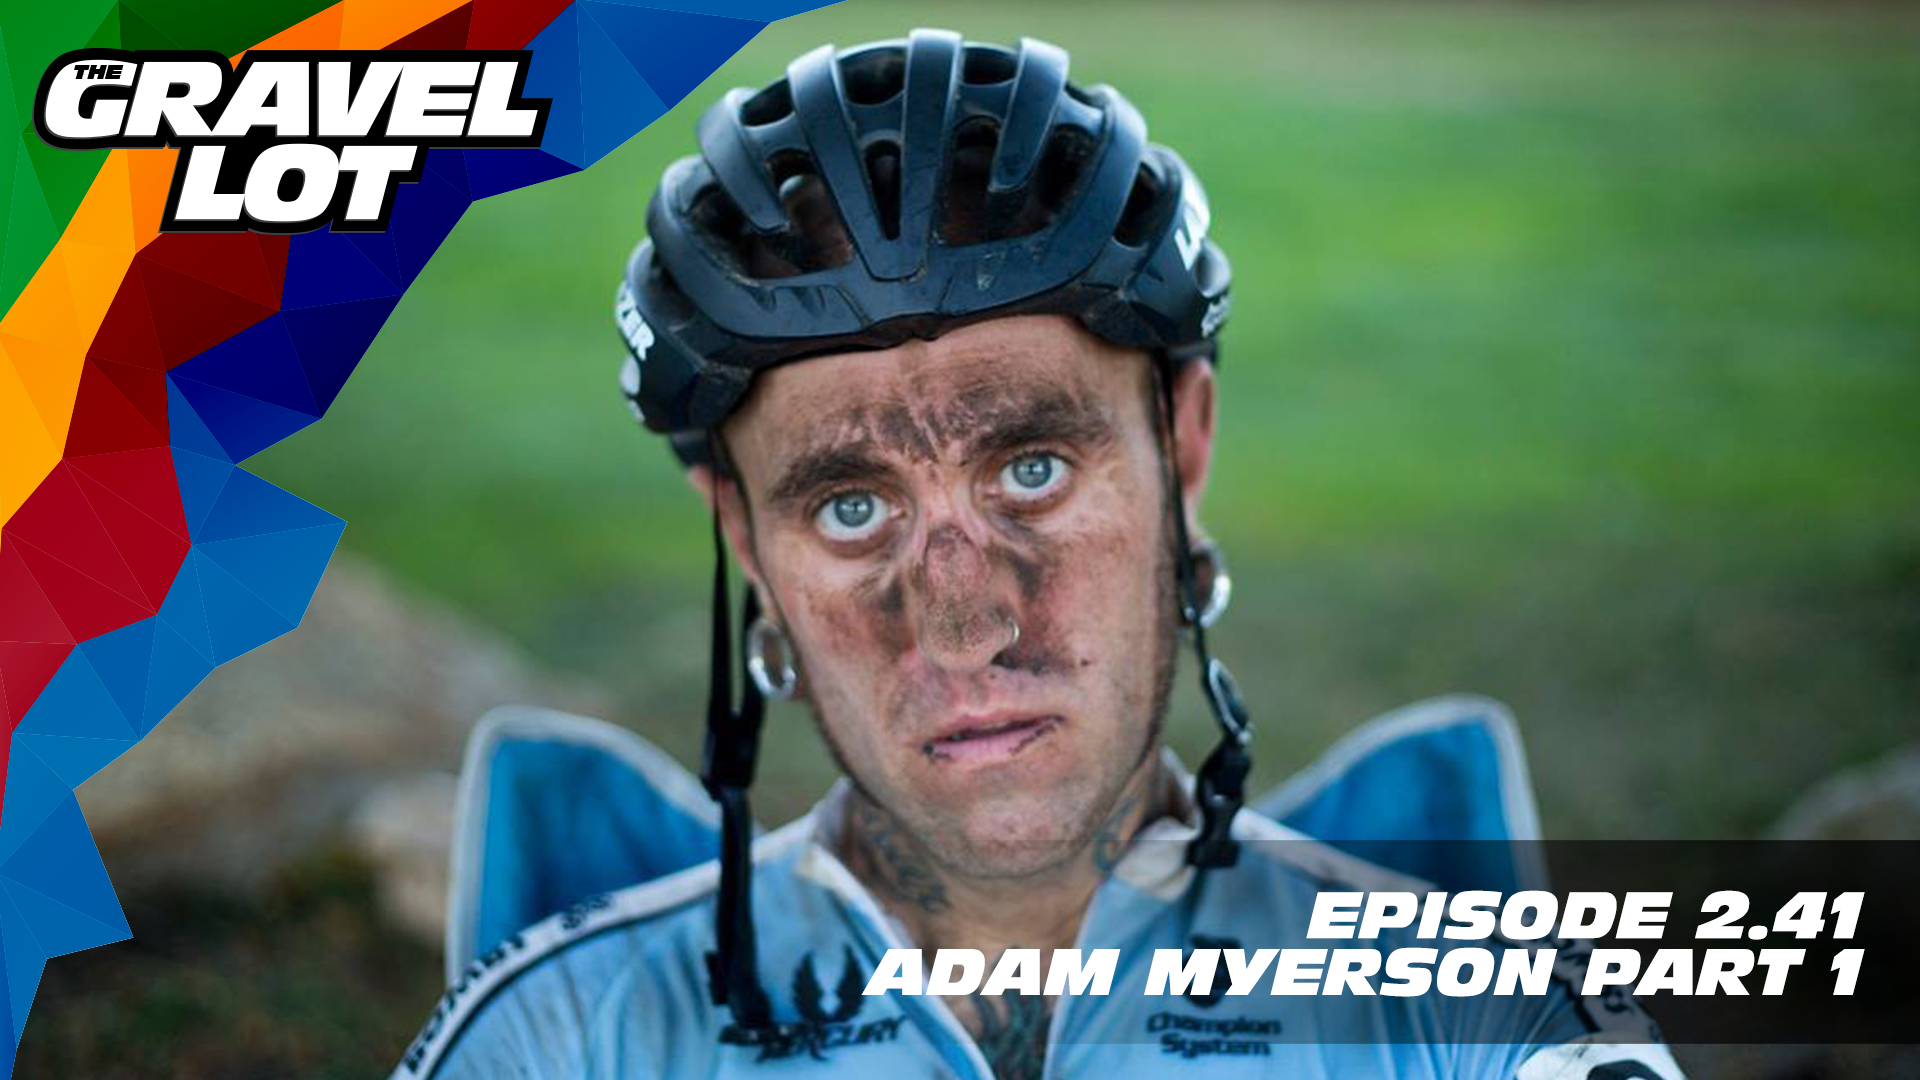 "Adam Myerson is a name that rarely needs an introduction to the cycling world. In part 1 of his 2 part interview, we talk to Adam about his childhood, growing up, and discovering happiness, curiosity, and life purpose along the way. Buckle up Bike Twitter, because the next 2 weeks are gonna be good.   Learn more about the WORX Hydroshot: Use code ""cleanbike"" at checkout for 15% off    WHOOP    Grimpeur Brothers Coffee: Purchase The Full Schleck or Hello Cyclocross Friends Espresso and support WAP today!    Handup Gloves: Use code ""PEBBLE$"" for 20% off EVERYTHING in store.    RoadID: Save $10 off ANY order over $20.    Be Free Ride Bikes:    Exclusive Preview of Unknown Country: One man's inspirational journey to the Dirty Kanza XL    Visit The Gravel Lot website for our latest podcast, Real Talk videos, Bonus Content, shop, social media, and everything in between.   Subscribe to The Gravel Lot on the  Wide Angle Podium Network and become a member TODAY and get access to EXCLUSIVE bonus content.   Learn more about Undertipper and download their latest album ""Y'all"" at:  http://undertipper.bandcamp.com/"